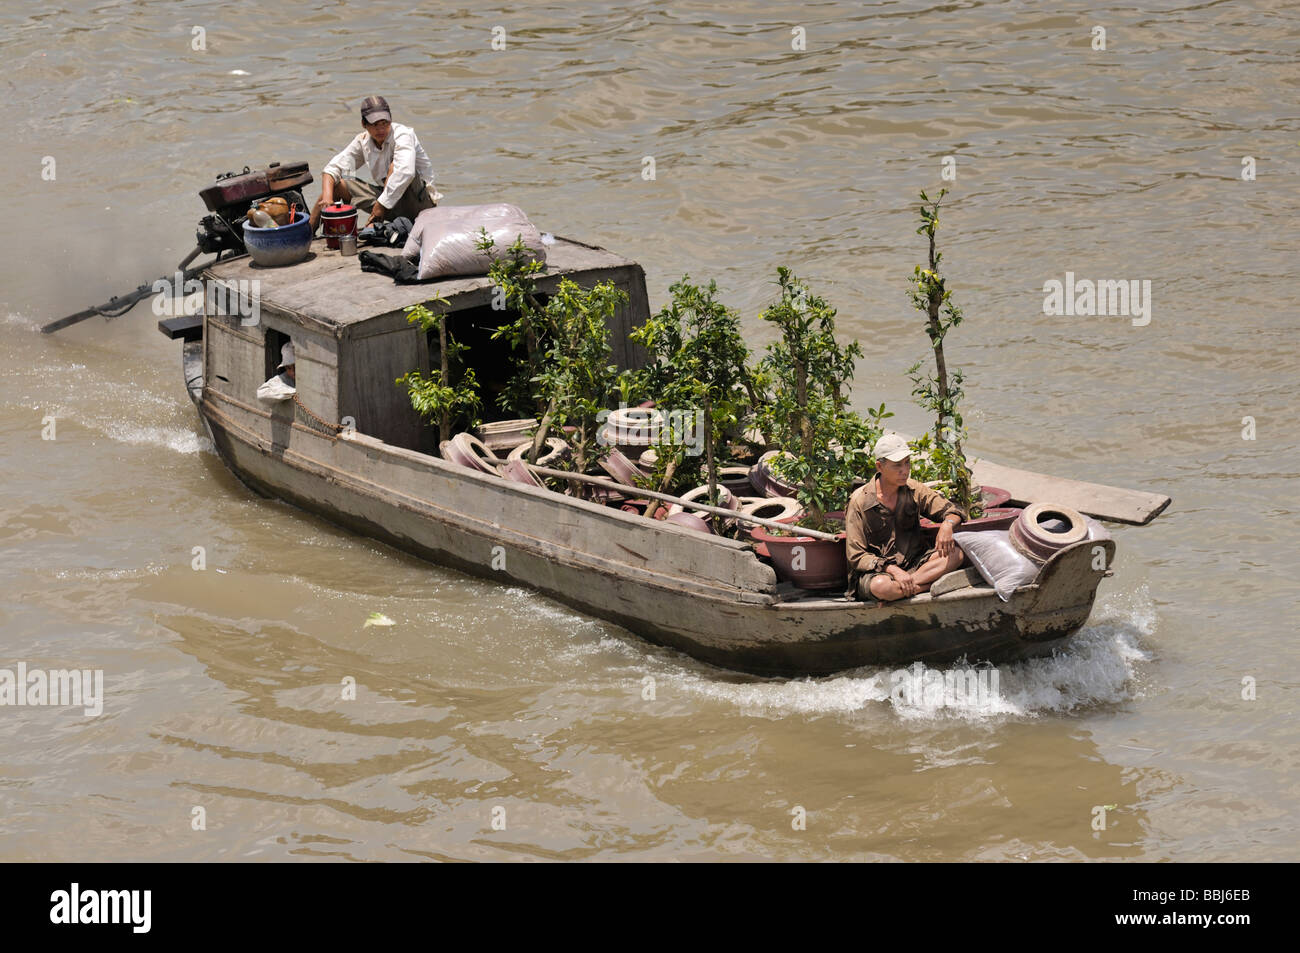 Two men on a wooden boat on Mekong River, plant trader, Can Tho, Mekong Delta, Vietnam - Stock Image